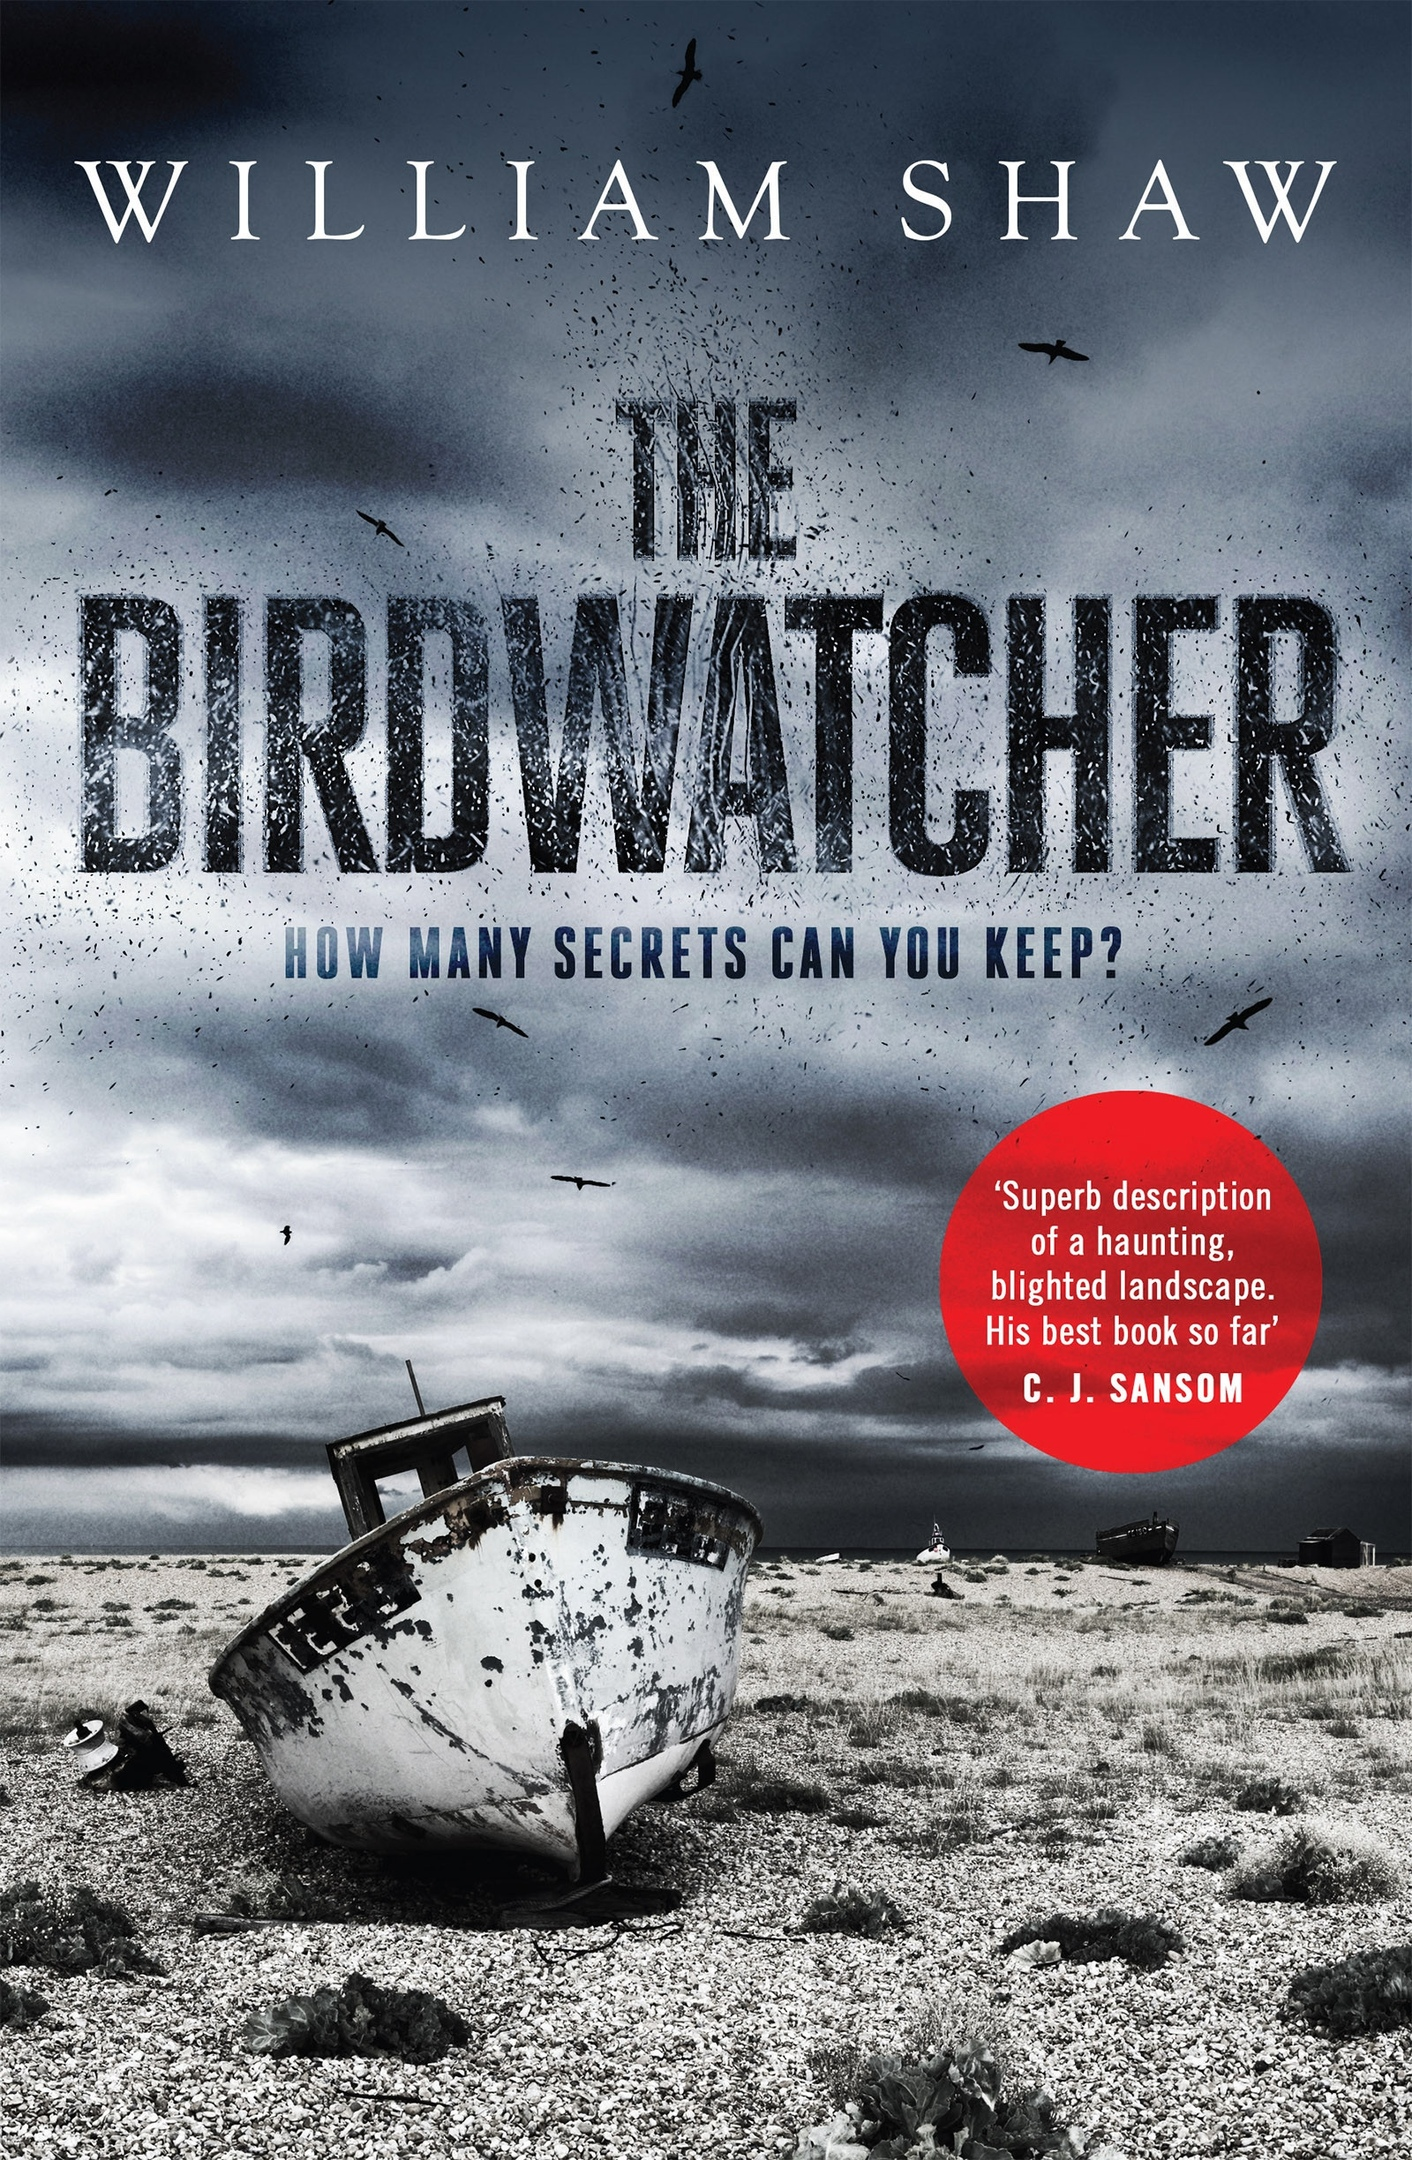 William Shaw – The Birdwatcher Genre: Author: